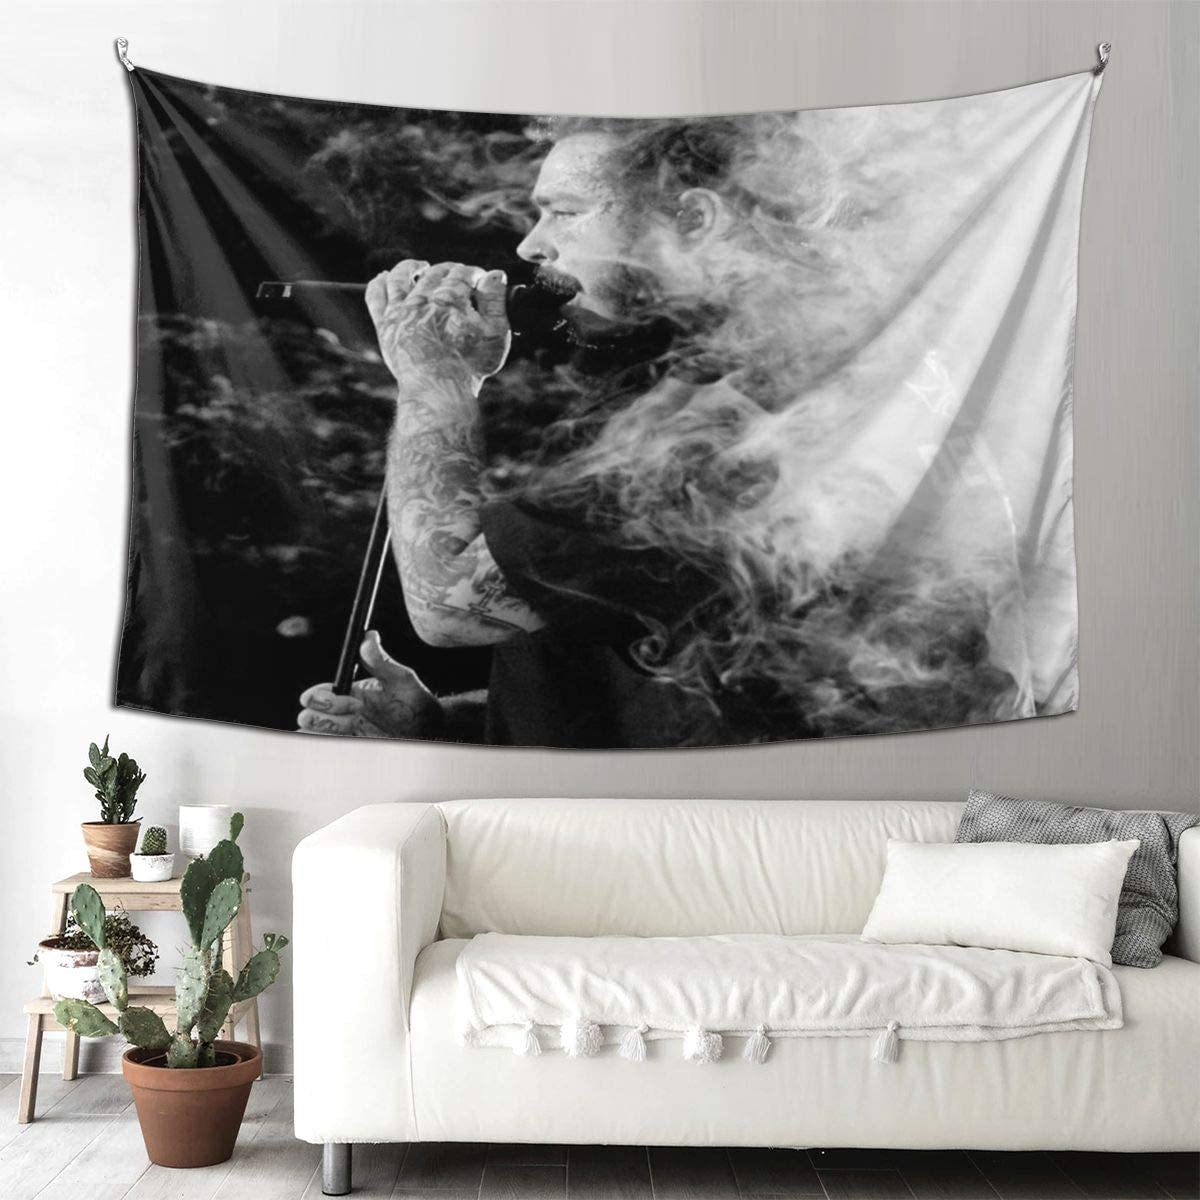 AkanaRika Tapestry Wall Hanging,Po-st Ma-Lone Art Tapestry,Wall Art Decoration for Living Room Bedroom Dorm Home 60 X 90 Inches,152 X 230 cm